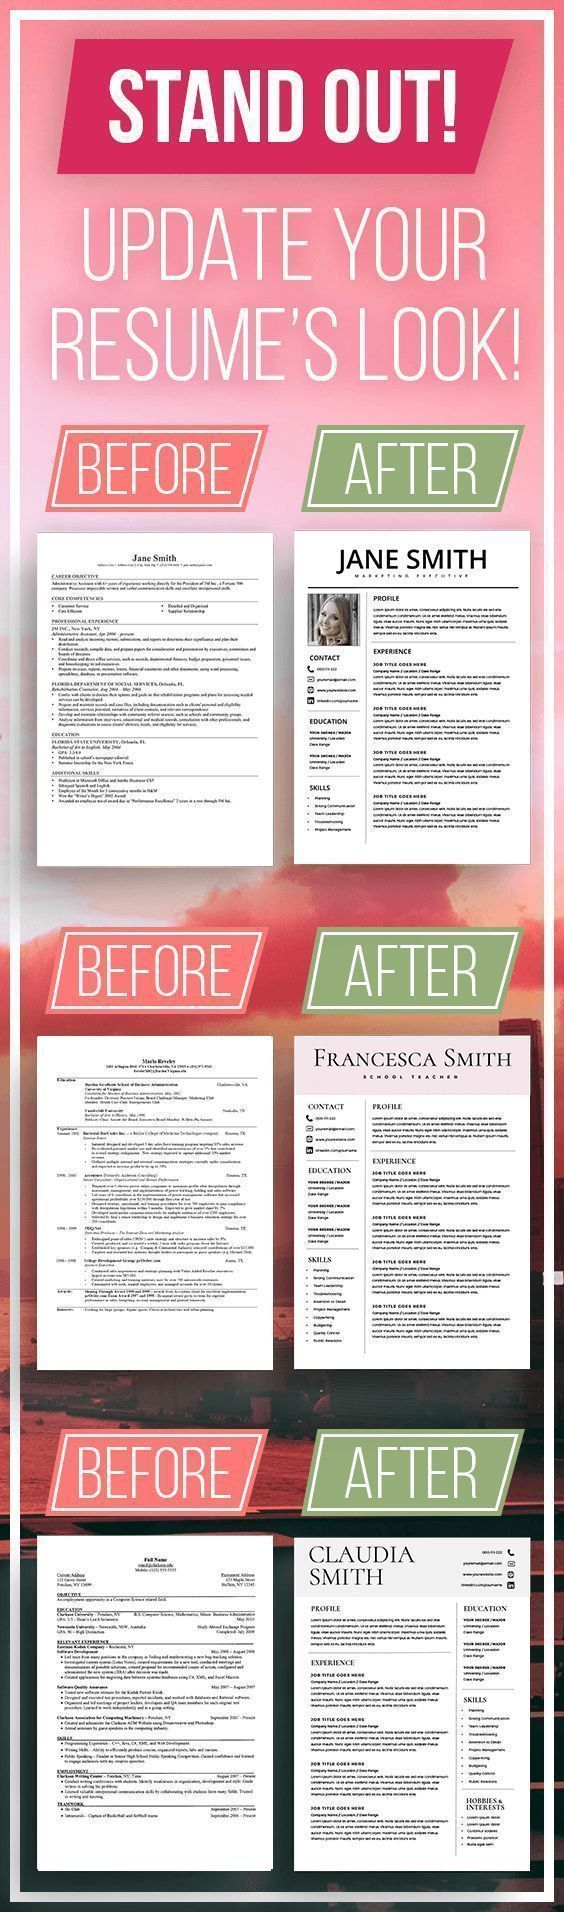 Professional Resume Format - Update you Resume's look today!